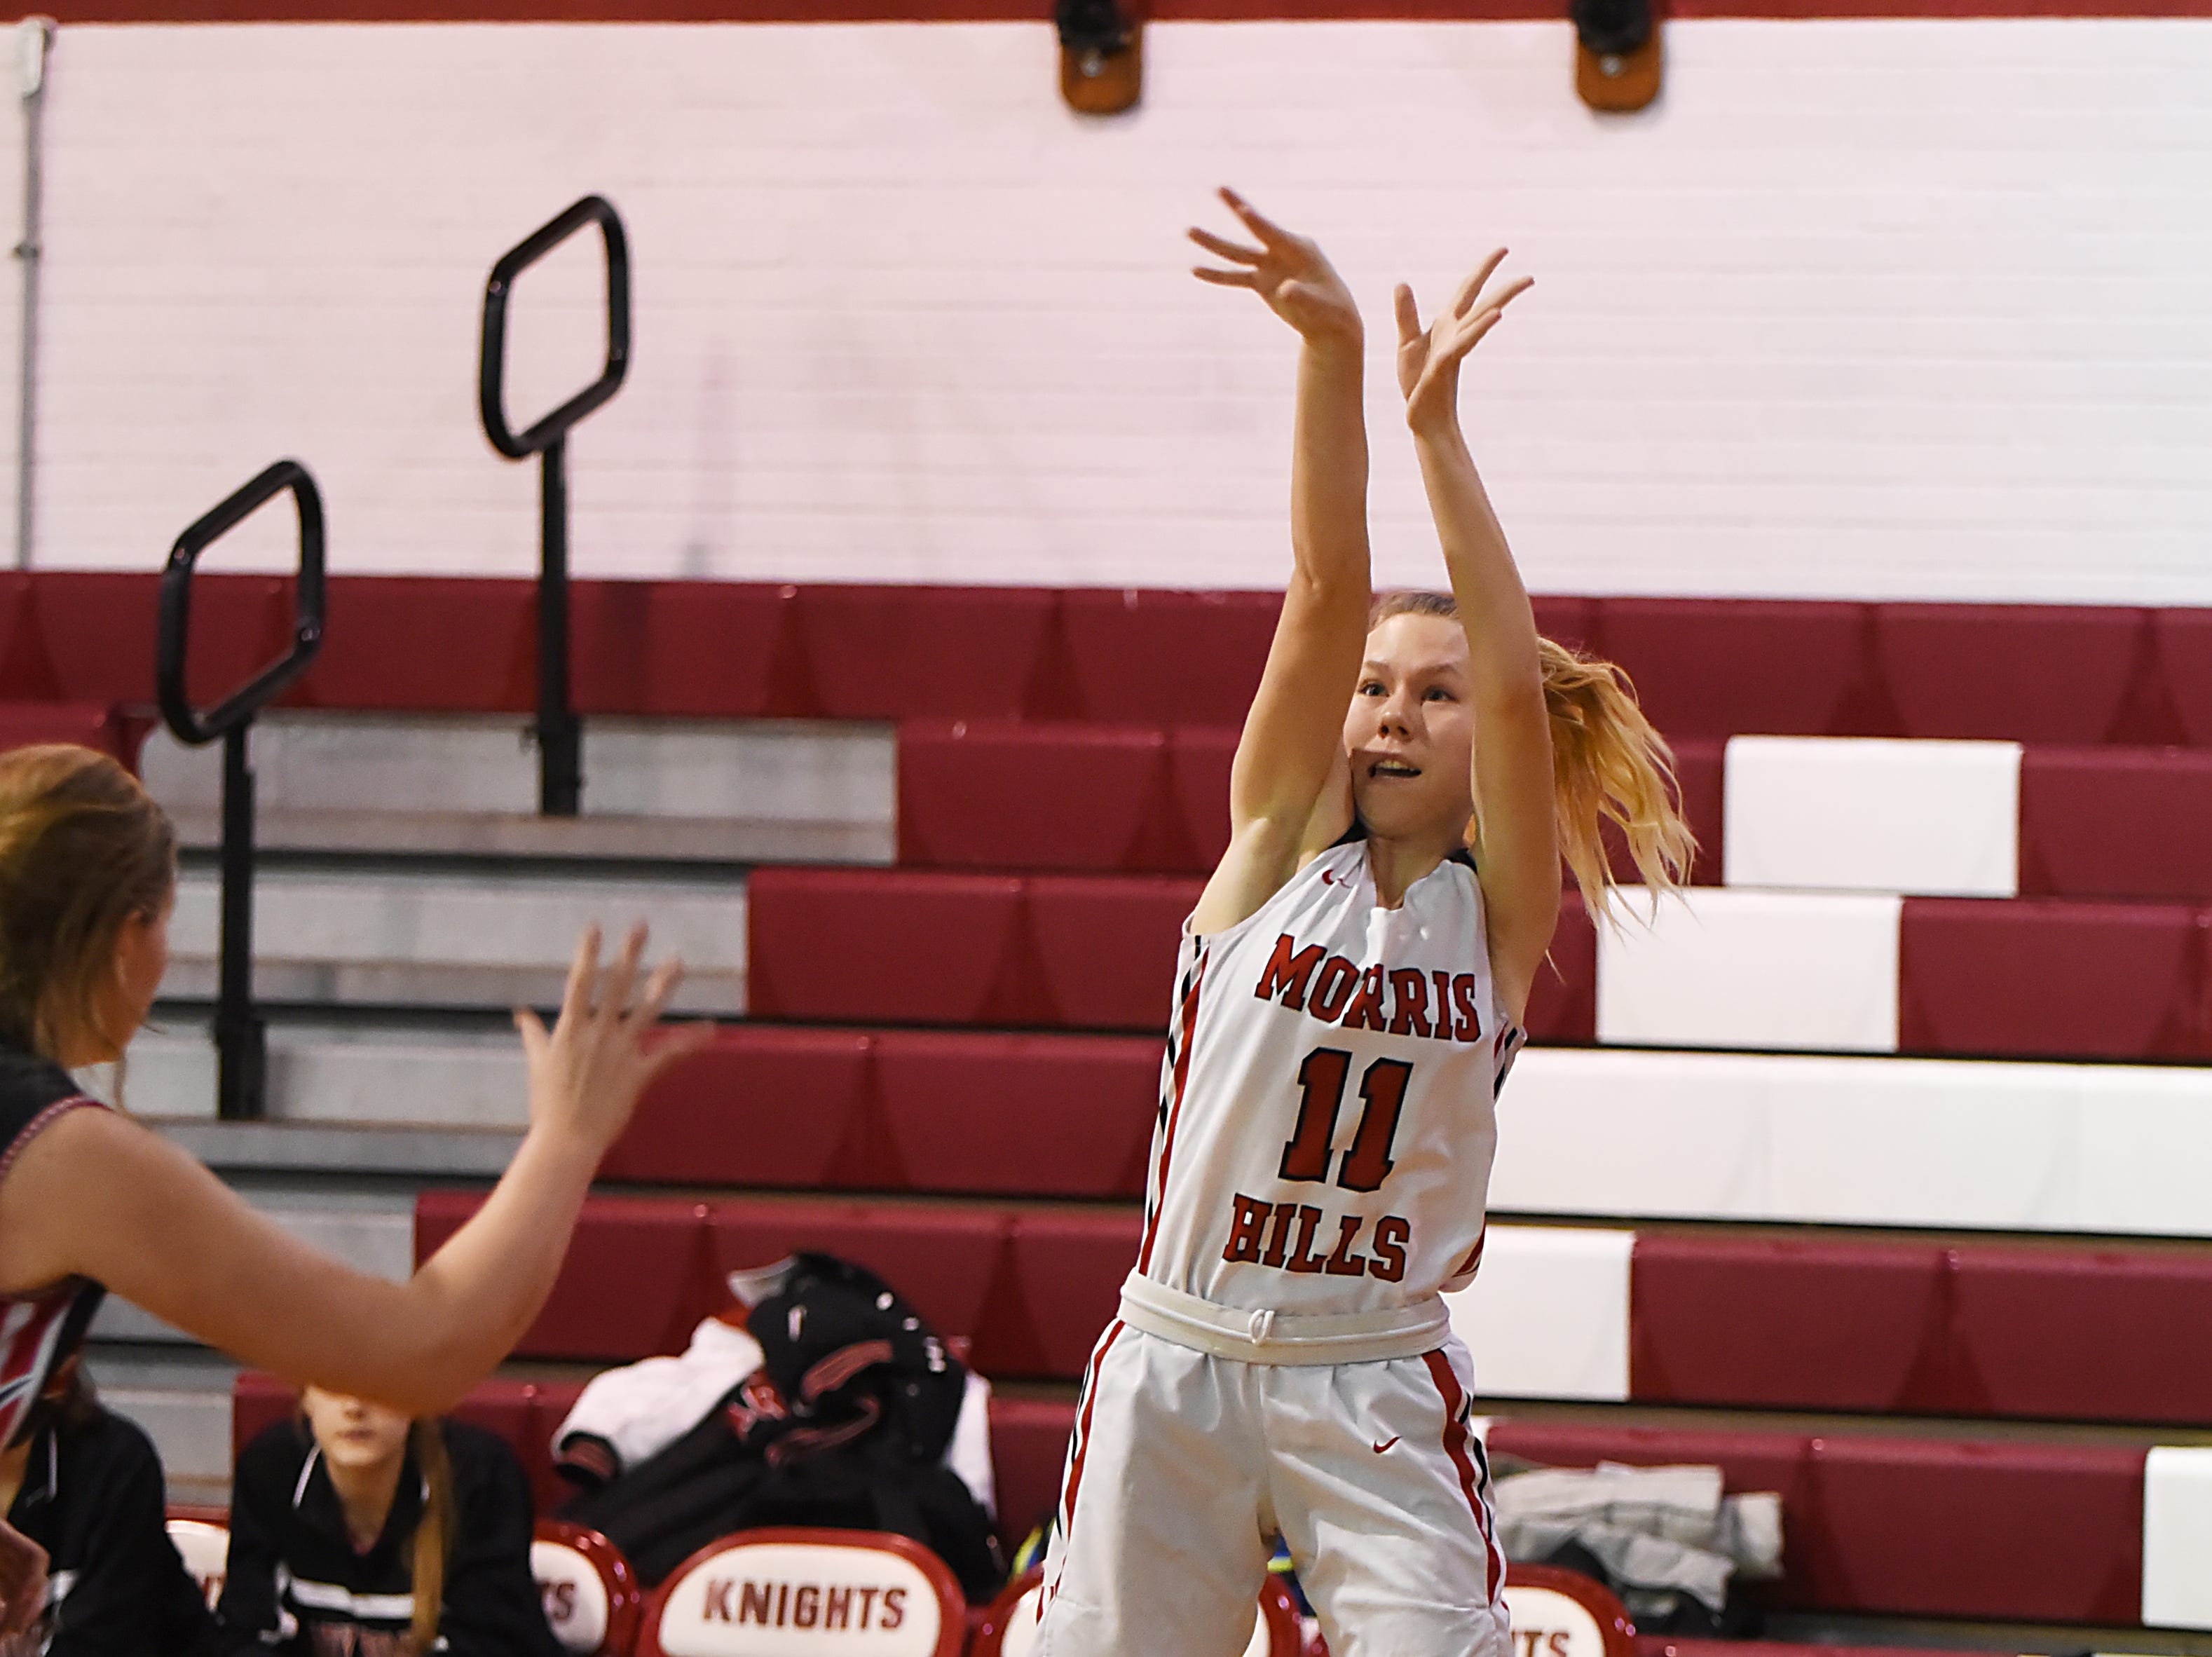 Boonton Vs. Morris Hills girls basketball game at the Morris Hills Holiday Tournament in Rockaway on Friday December 28, 2018. MH#11 Lauren Monarque throws the ball.